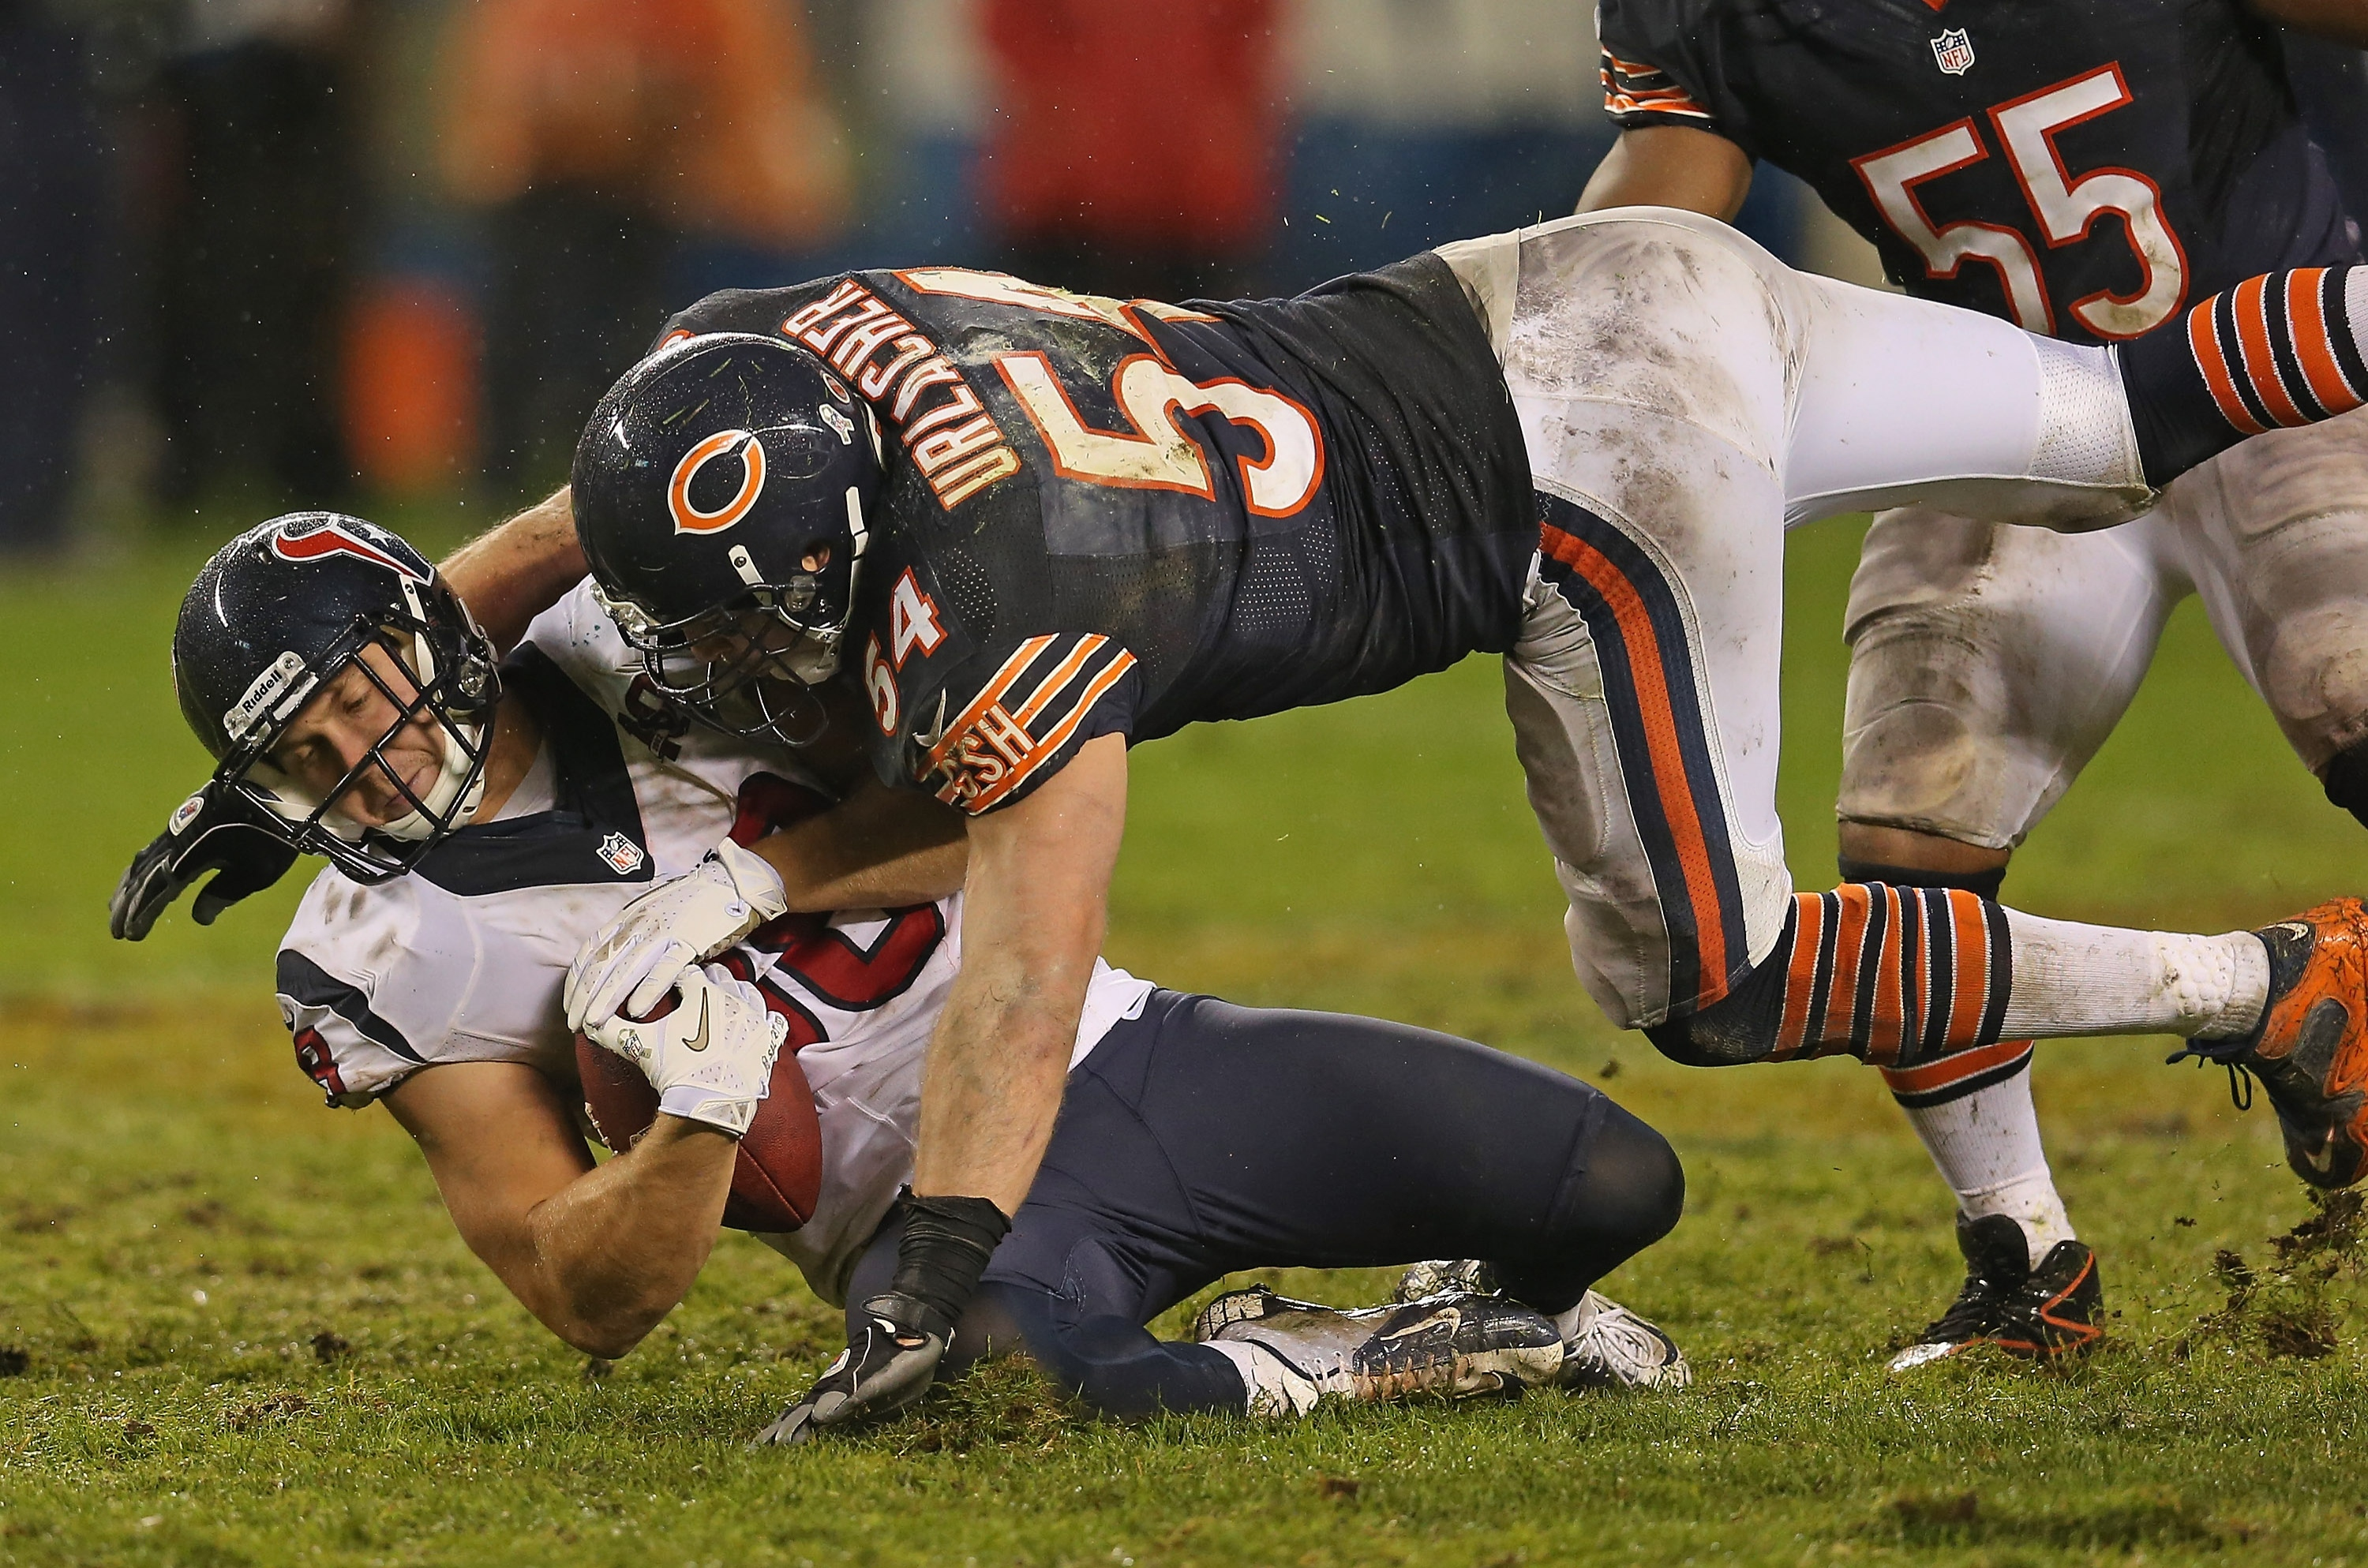 CHICAGO, IL - NOVEMBER 11: Brian Urlacher #54 of the Chicago Bears hits Garrett Graham #88 of the Houston Texans at Soldier Field on November 11, 2012 in Chicago, Illinois. The Texans defeated the Bears 13-6. (Photo by Jonathan Daniel/Getty Images)